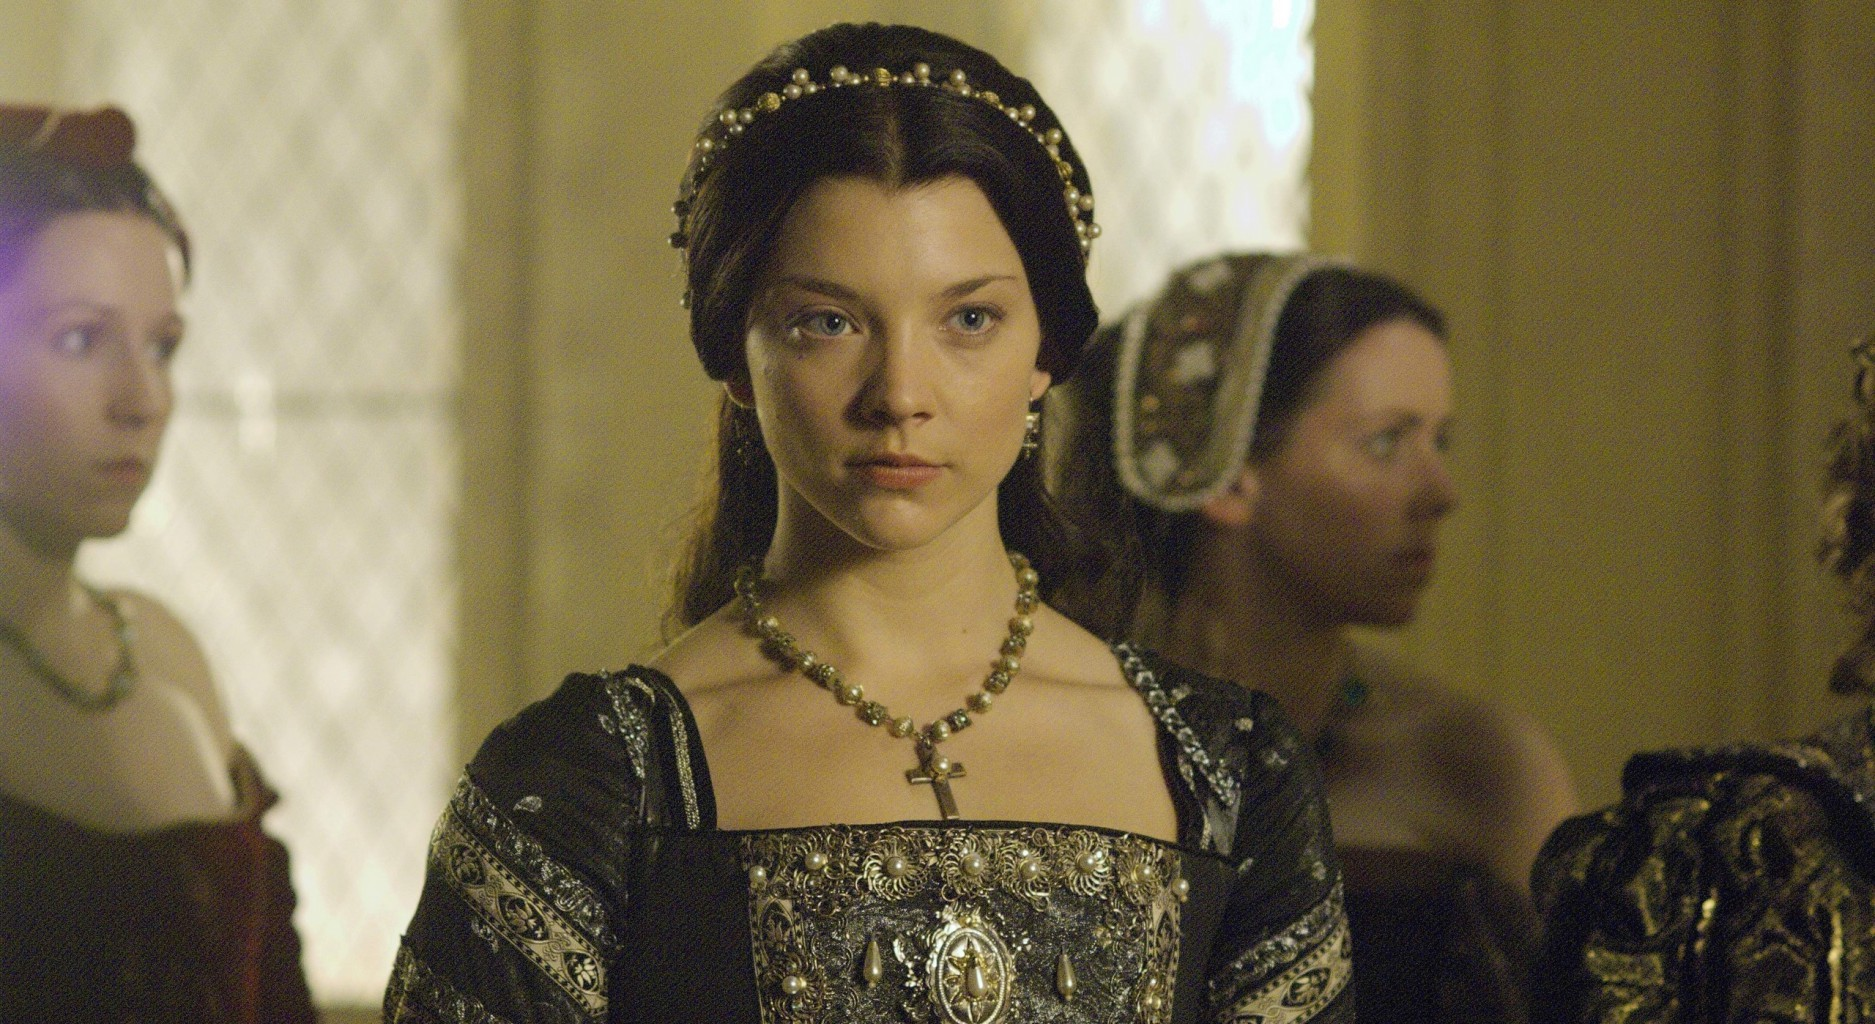 Anne-Boleyn-natalie-dormer-as-anne-boleyn-22253713-2560-1704